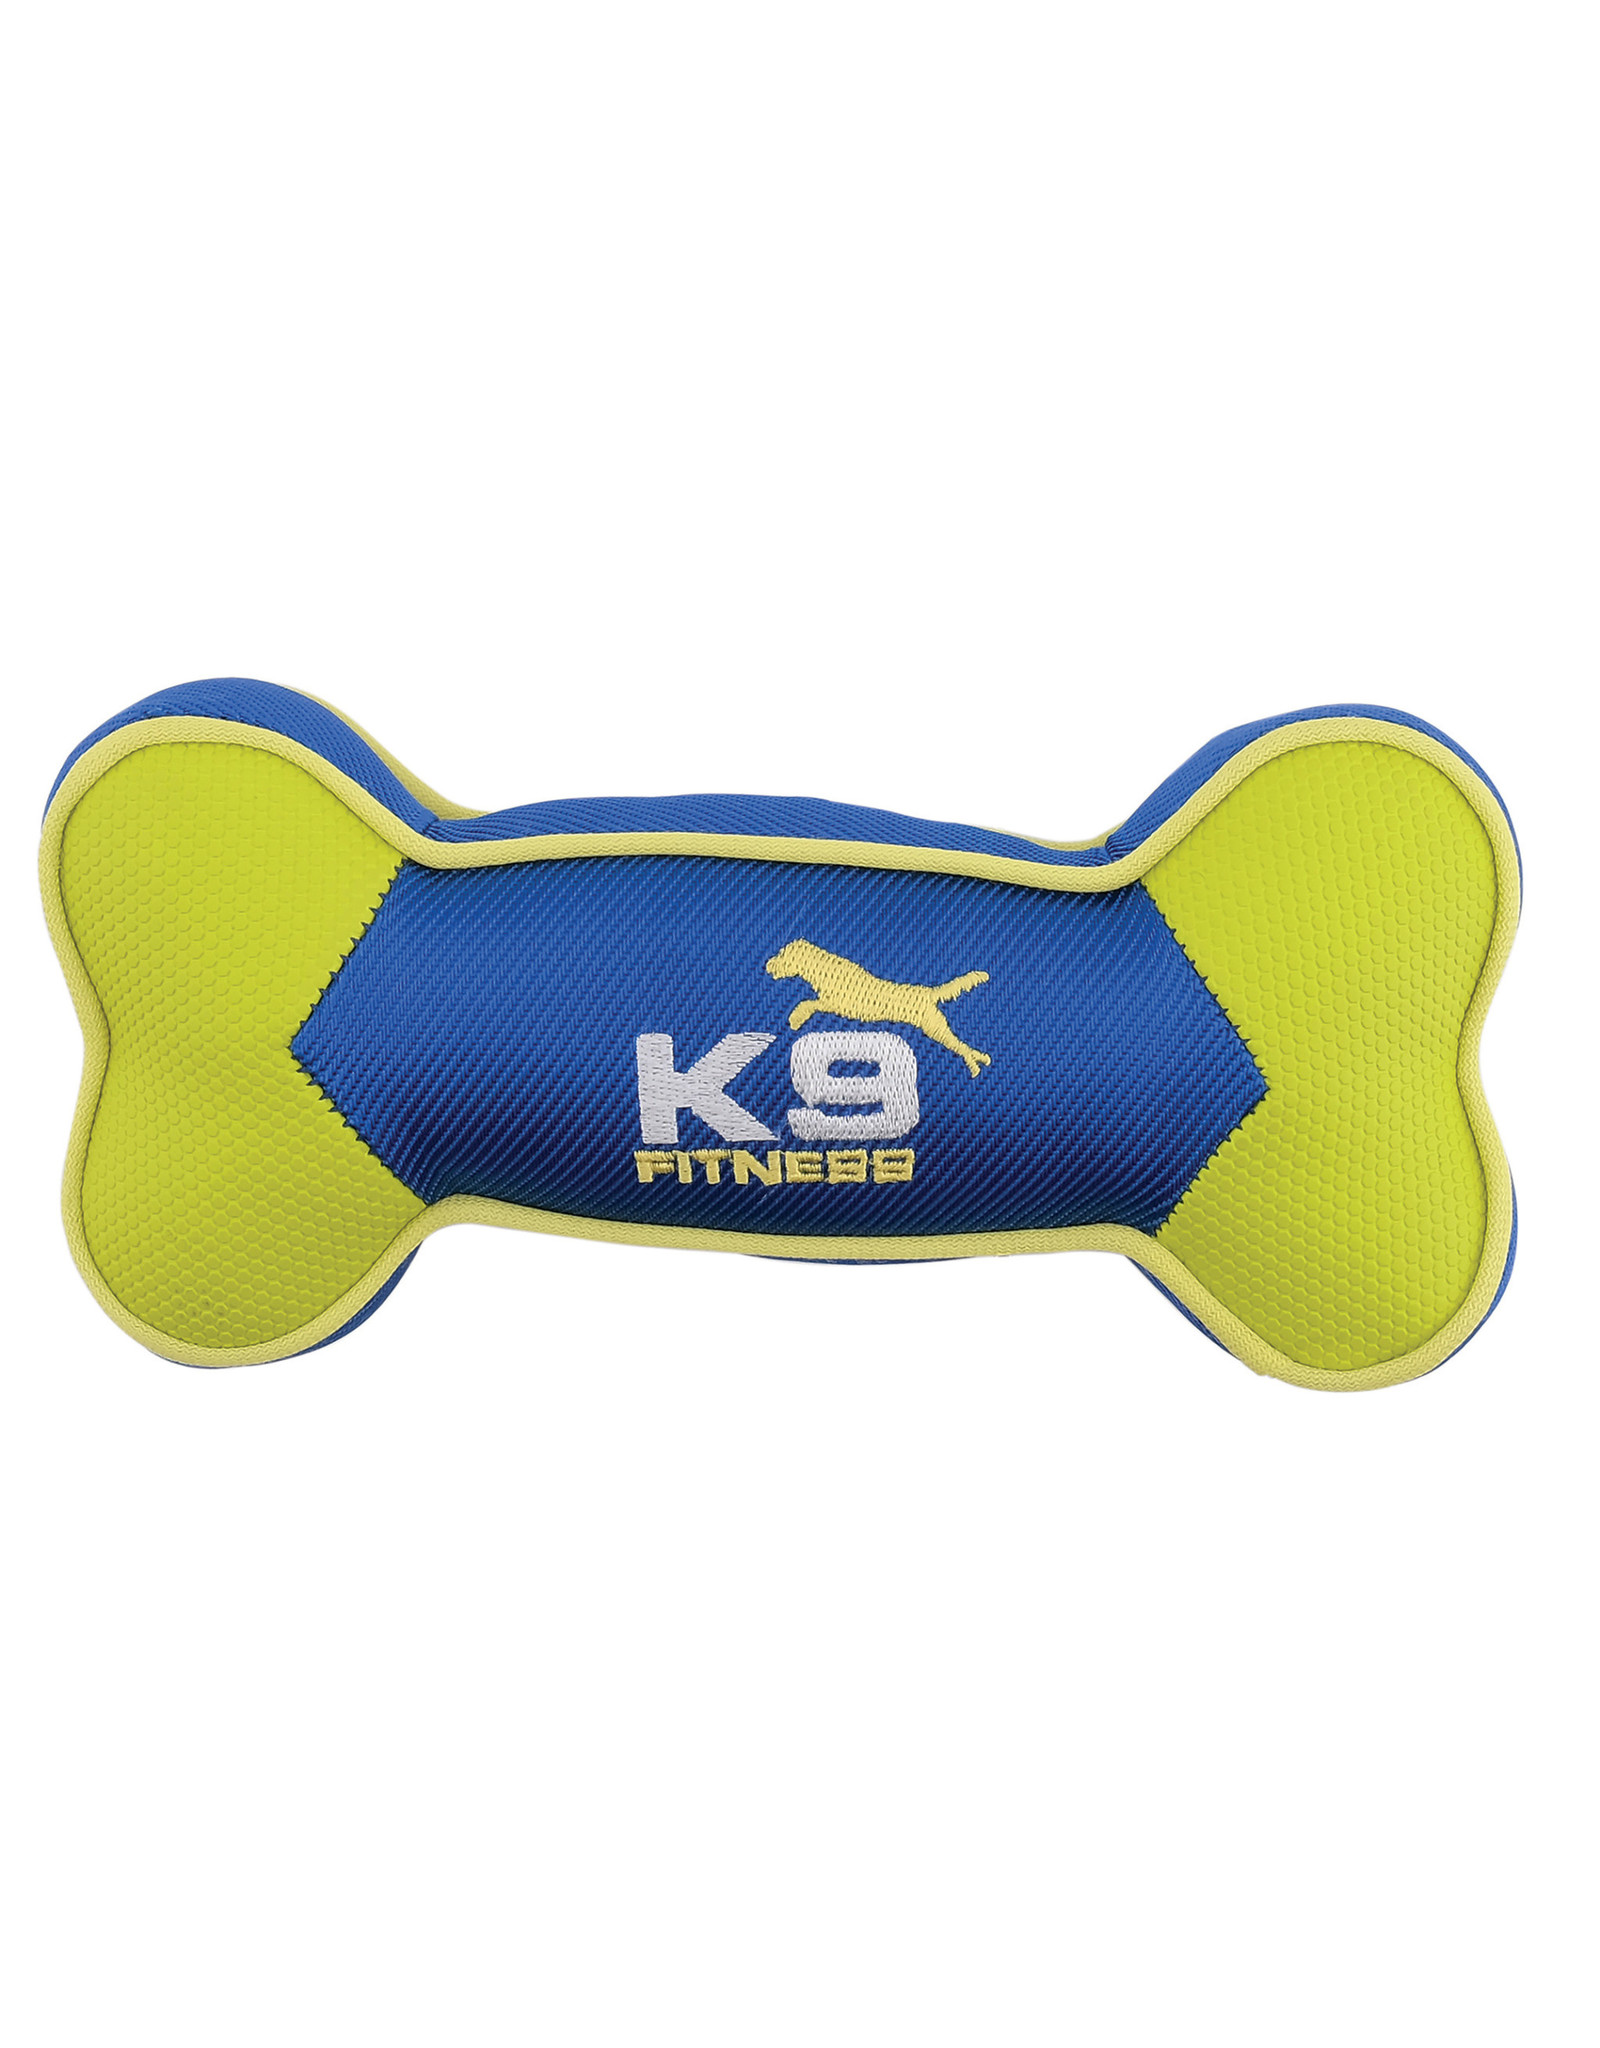 "Zeus K9 Fitness Tough Nylon Bone - 20.3cm (8"")"